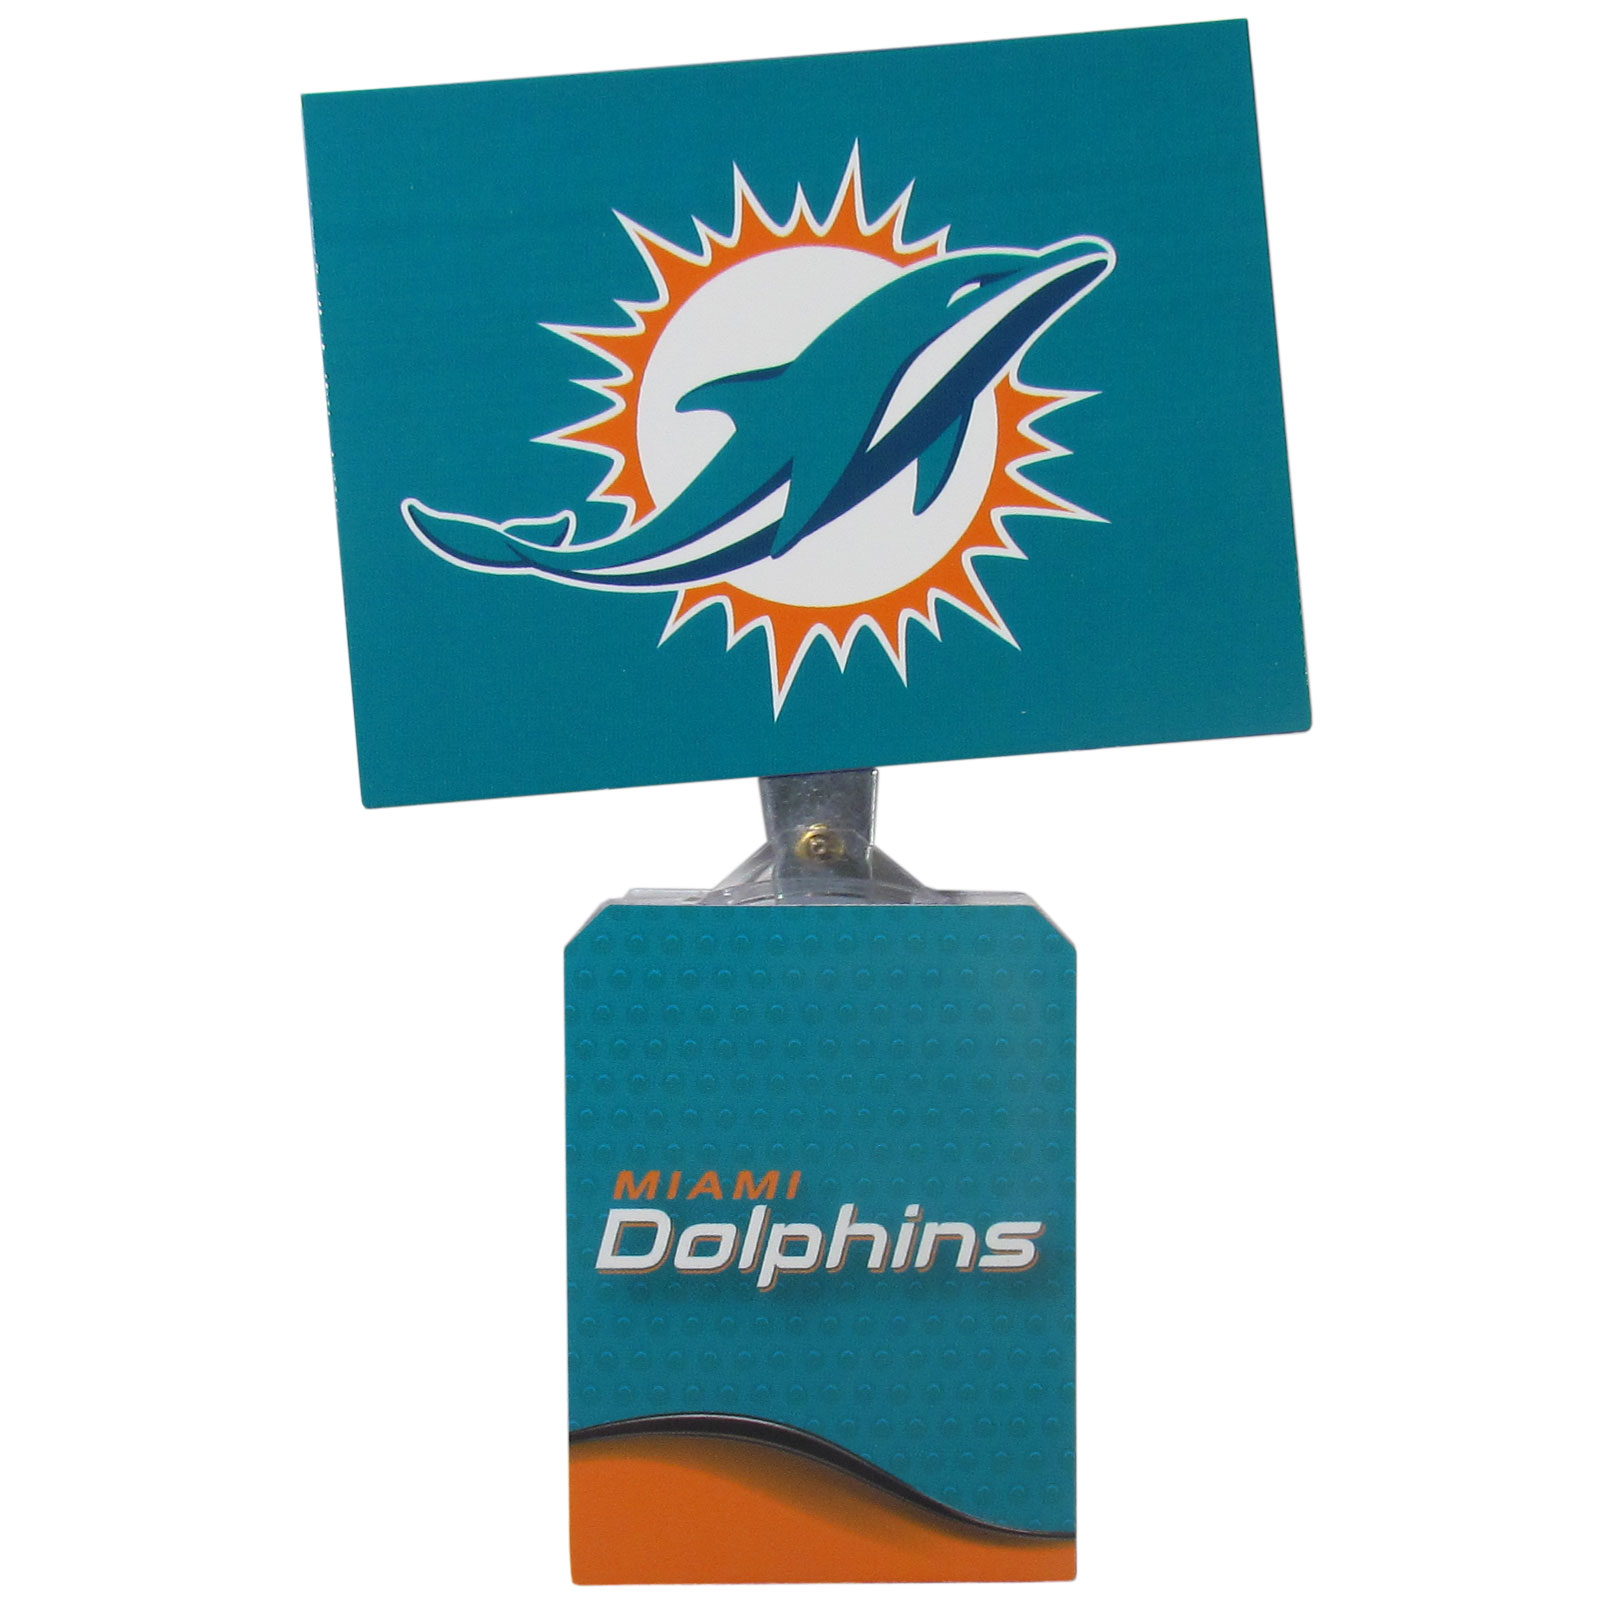 Miami Dolphins Solar Flags - Get pumped up on the way to game with Siskiyou's Chicago Bears Miami Dolphins Solar Flag that mounts to your dashboard or window. The in-motion solar flag also doubles as decoration for your tailgate or homegate! The base of the flag is 3 inches tall and the flag is 4 inches making the entire in-motion solar flag stand at 7 inches tall. Keep your spirit moving with your favorite team's Solar Flag.